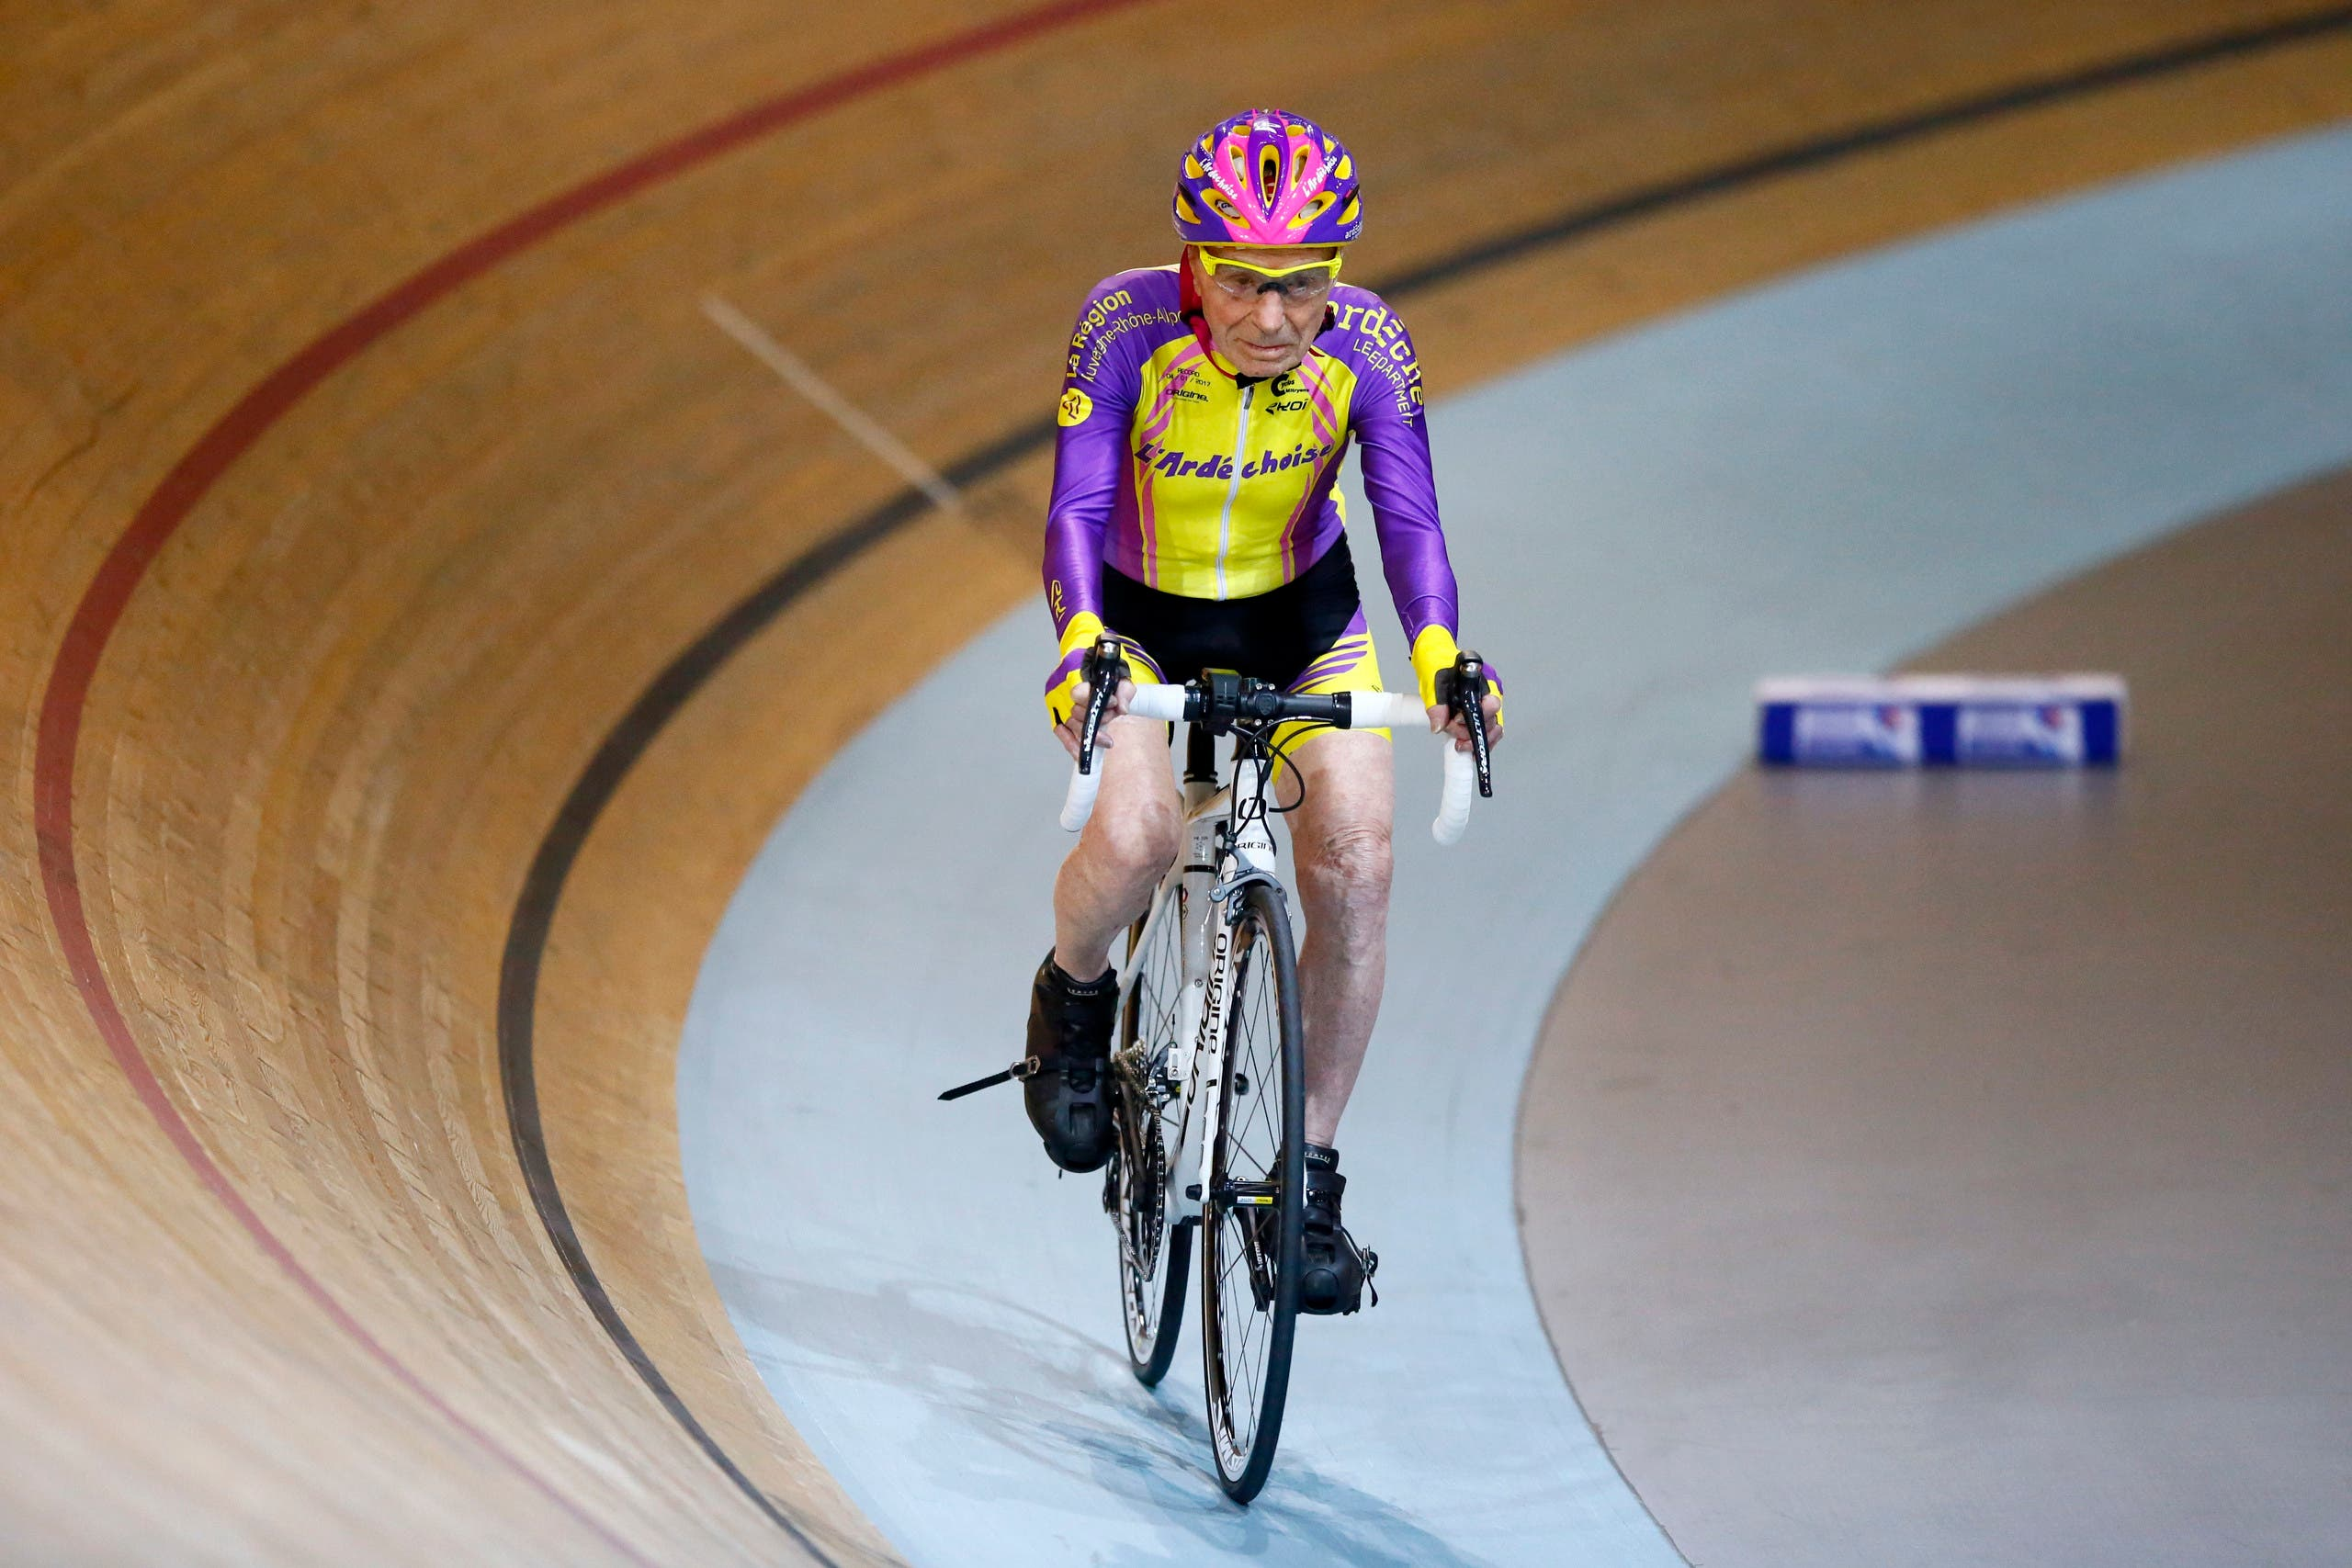 French cyclist Robert Marchand, aged 105, cycles to set a record for distance cycled in one hour, at the velodrome of Saint-Quentin en Yvelines, outside Paris, Wednesday, Jan. 4, 2017. (AP)